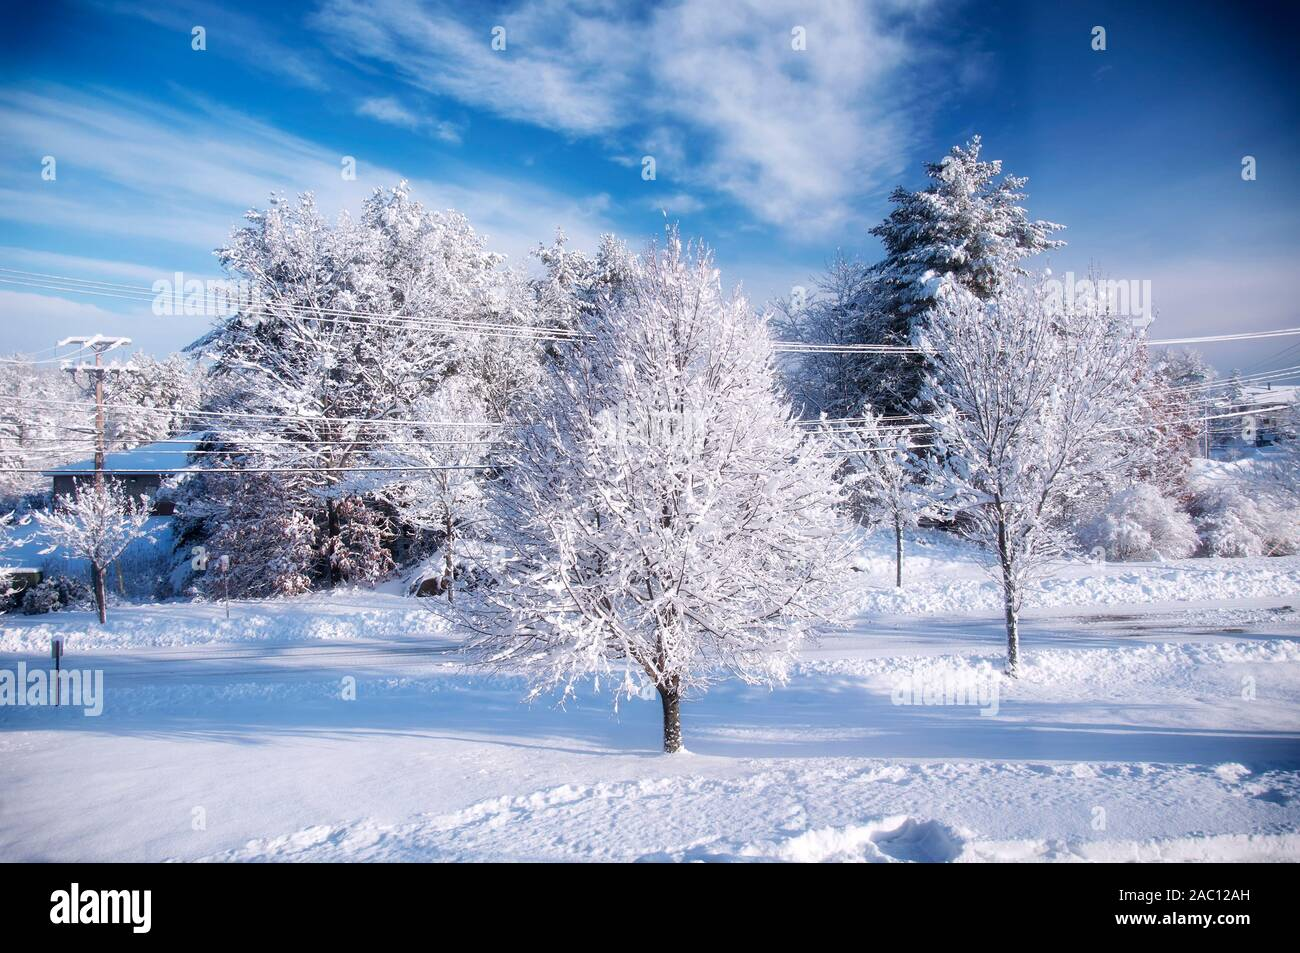 A Wintery Snow Blue Sky Day After A Winter Storm In Biddeford Maine Stock Photo Alamy